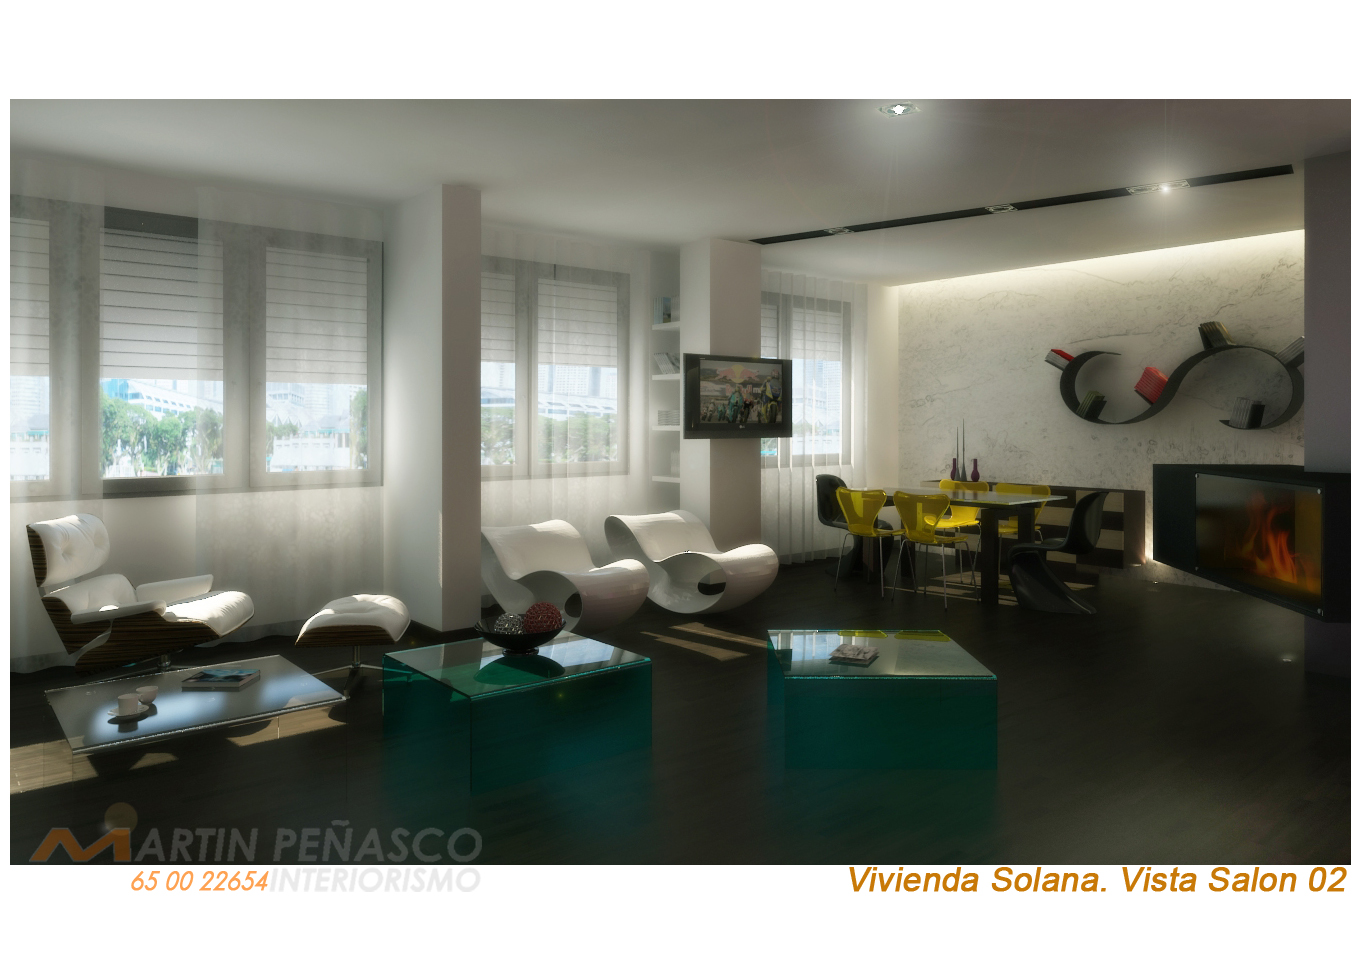 LaSolana RENDER Salon02